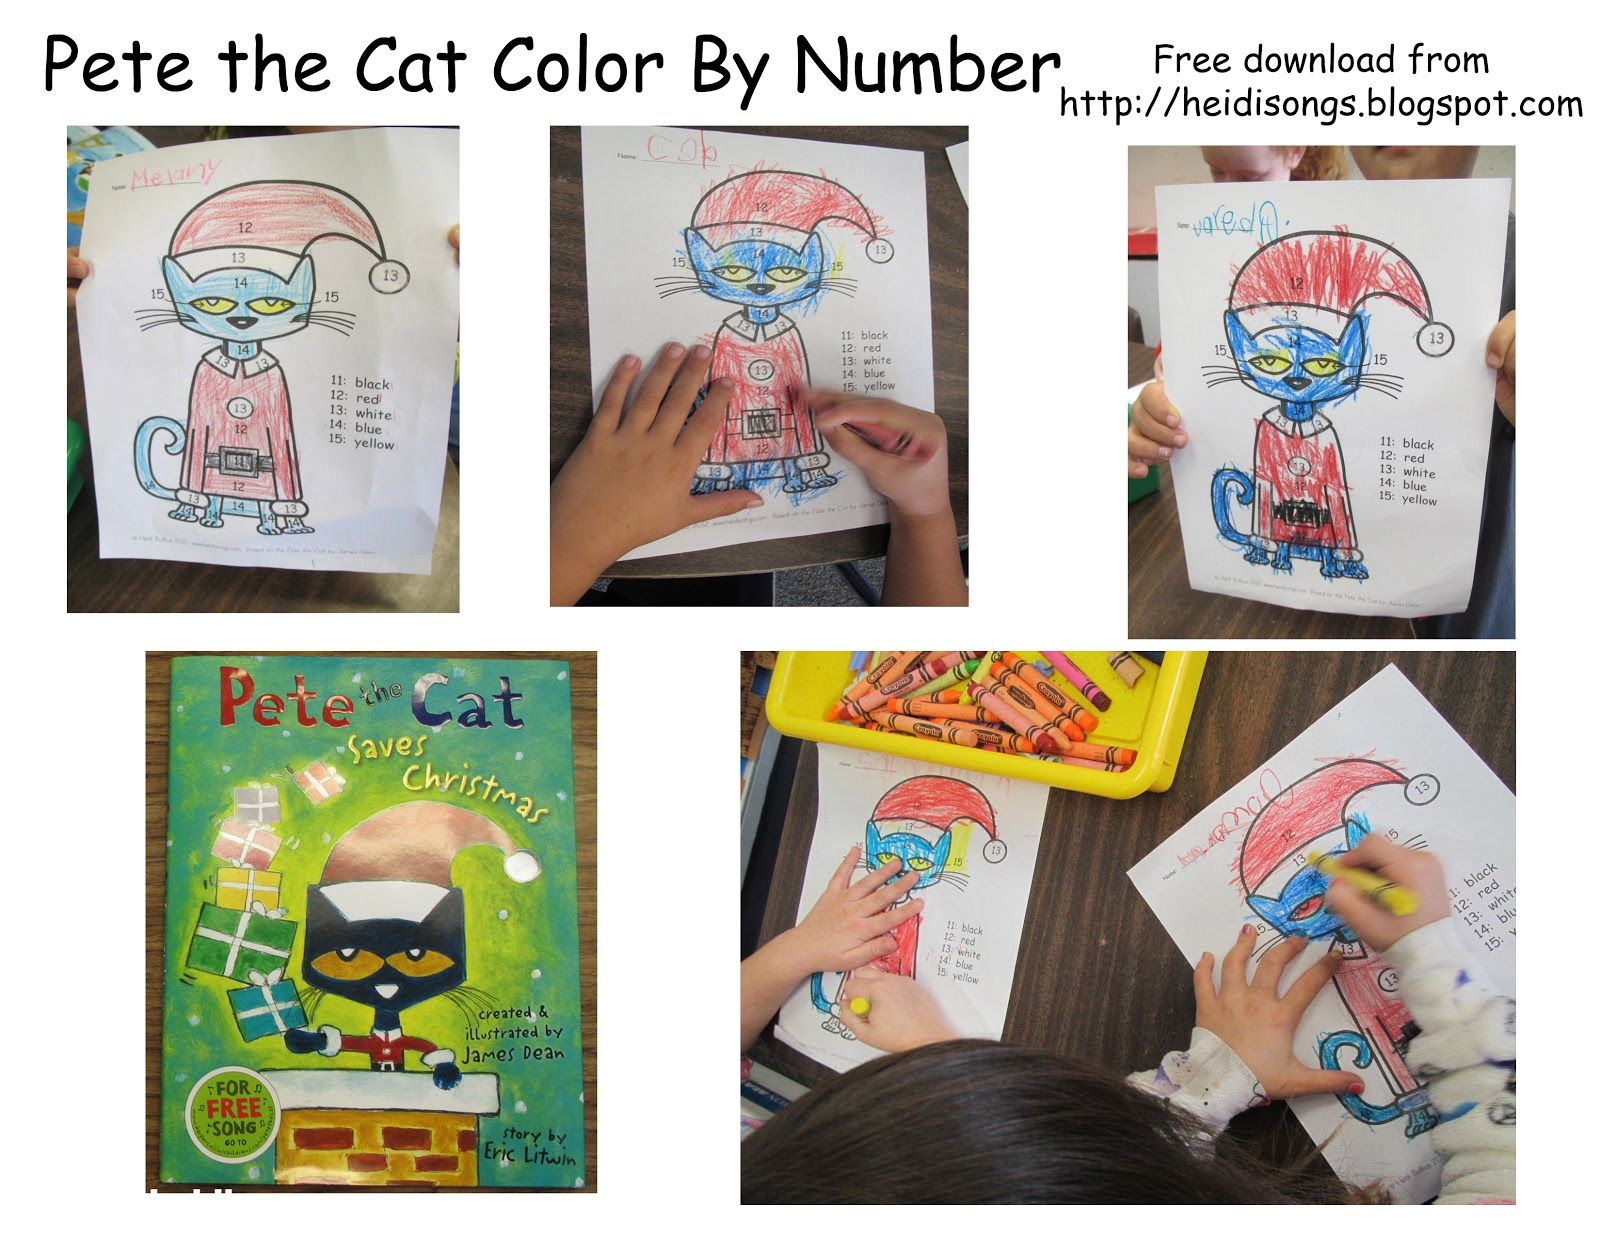 Pete The Cat Saves Christmas Freebies And Book Review